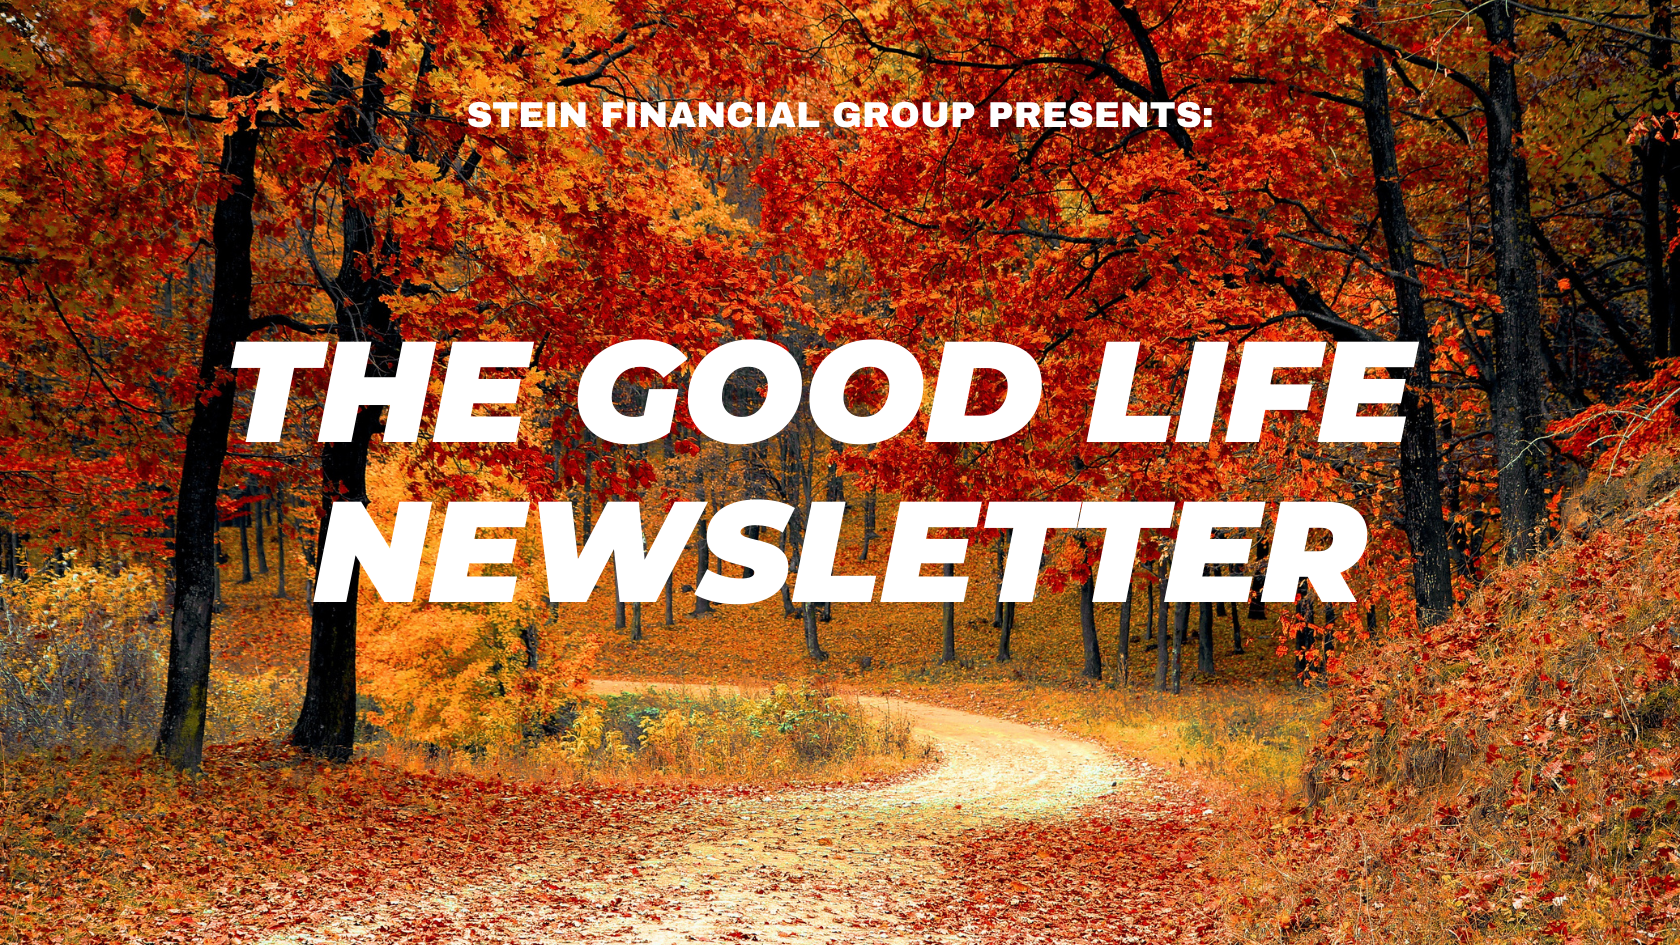 The Good Life Newsletter - No Stimulus, Stocks Lower & Jobless Claims Update  Thumbnail